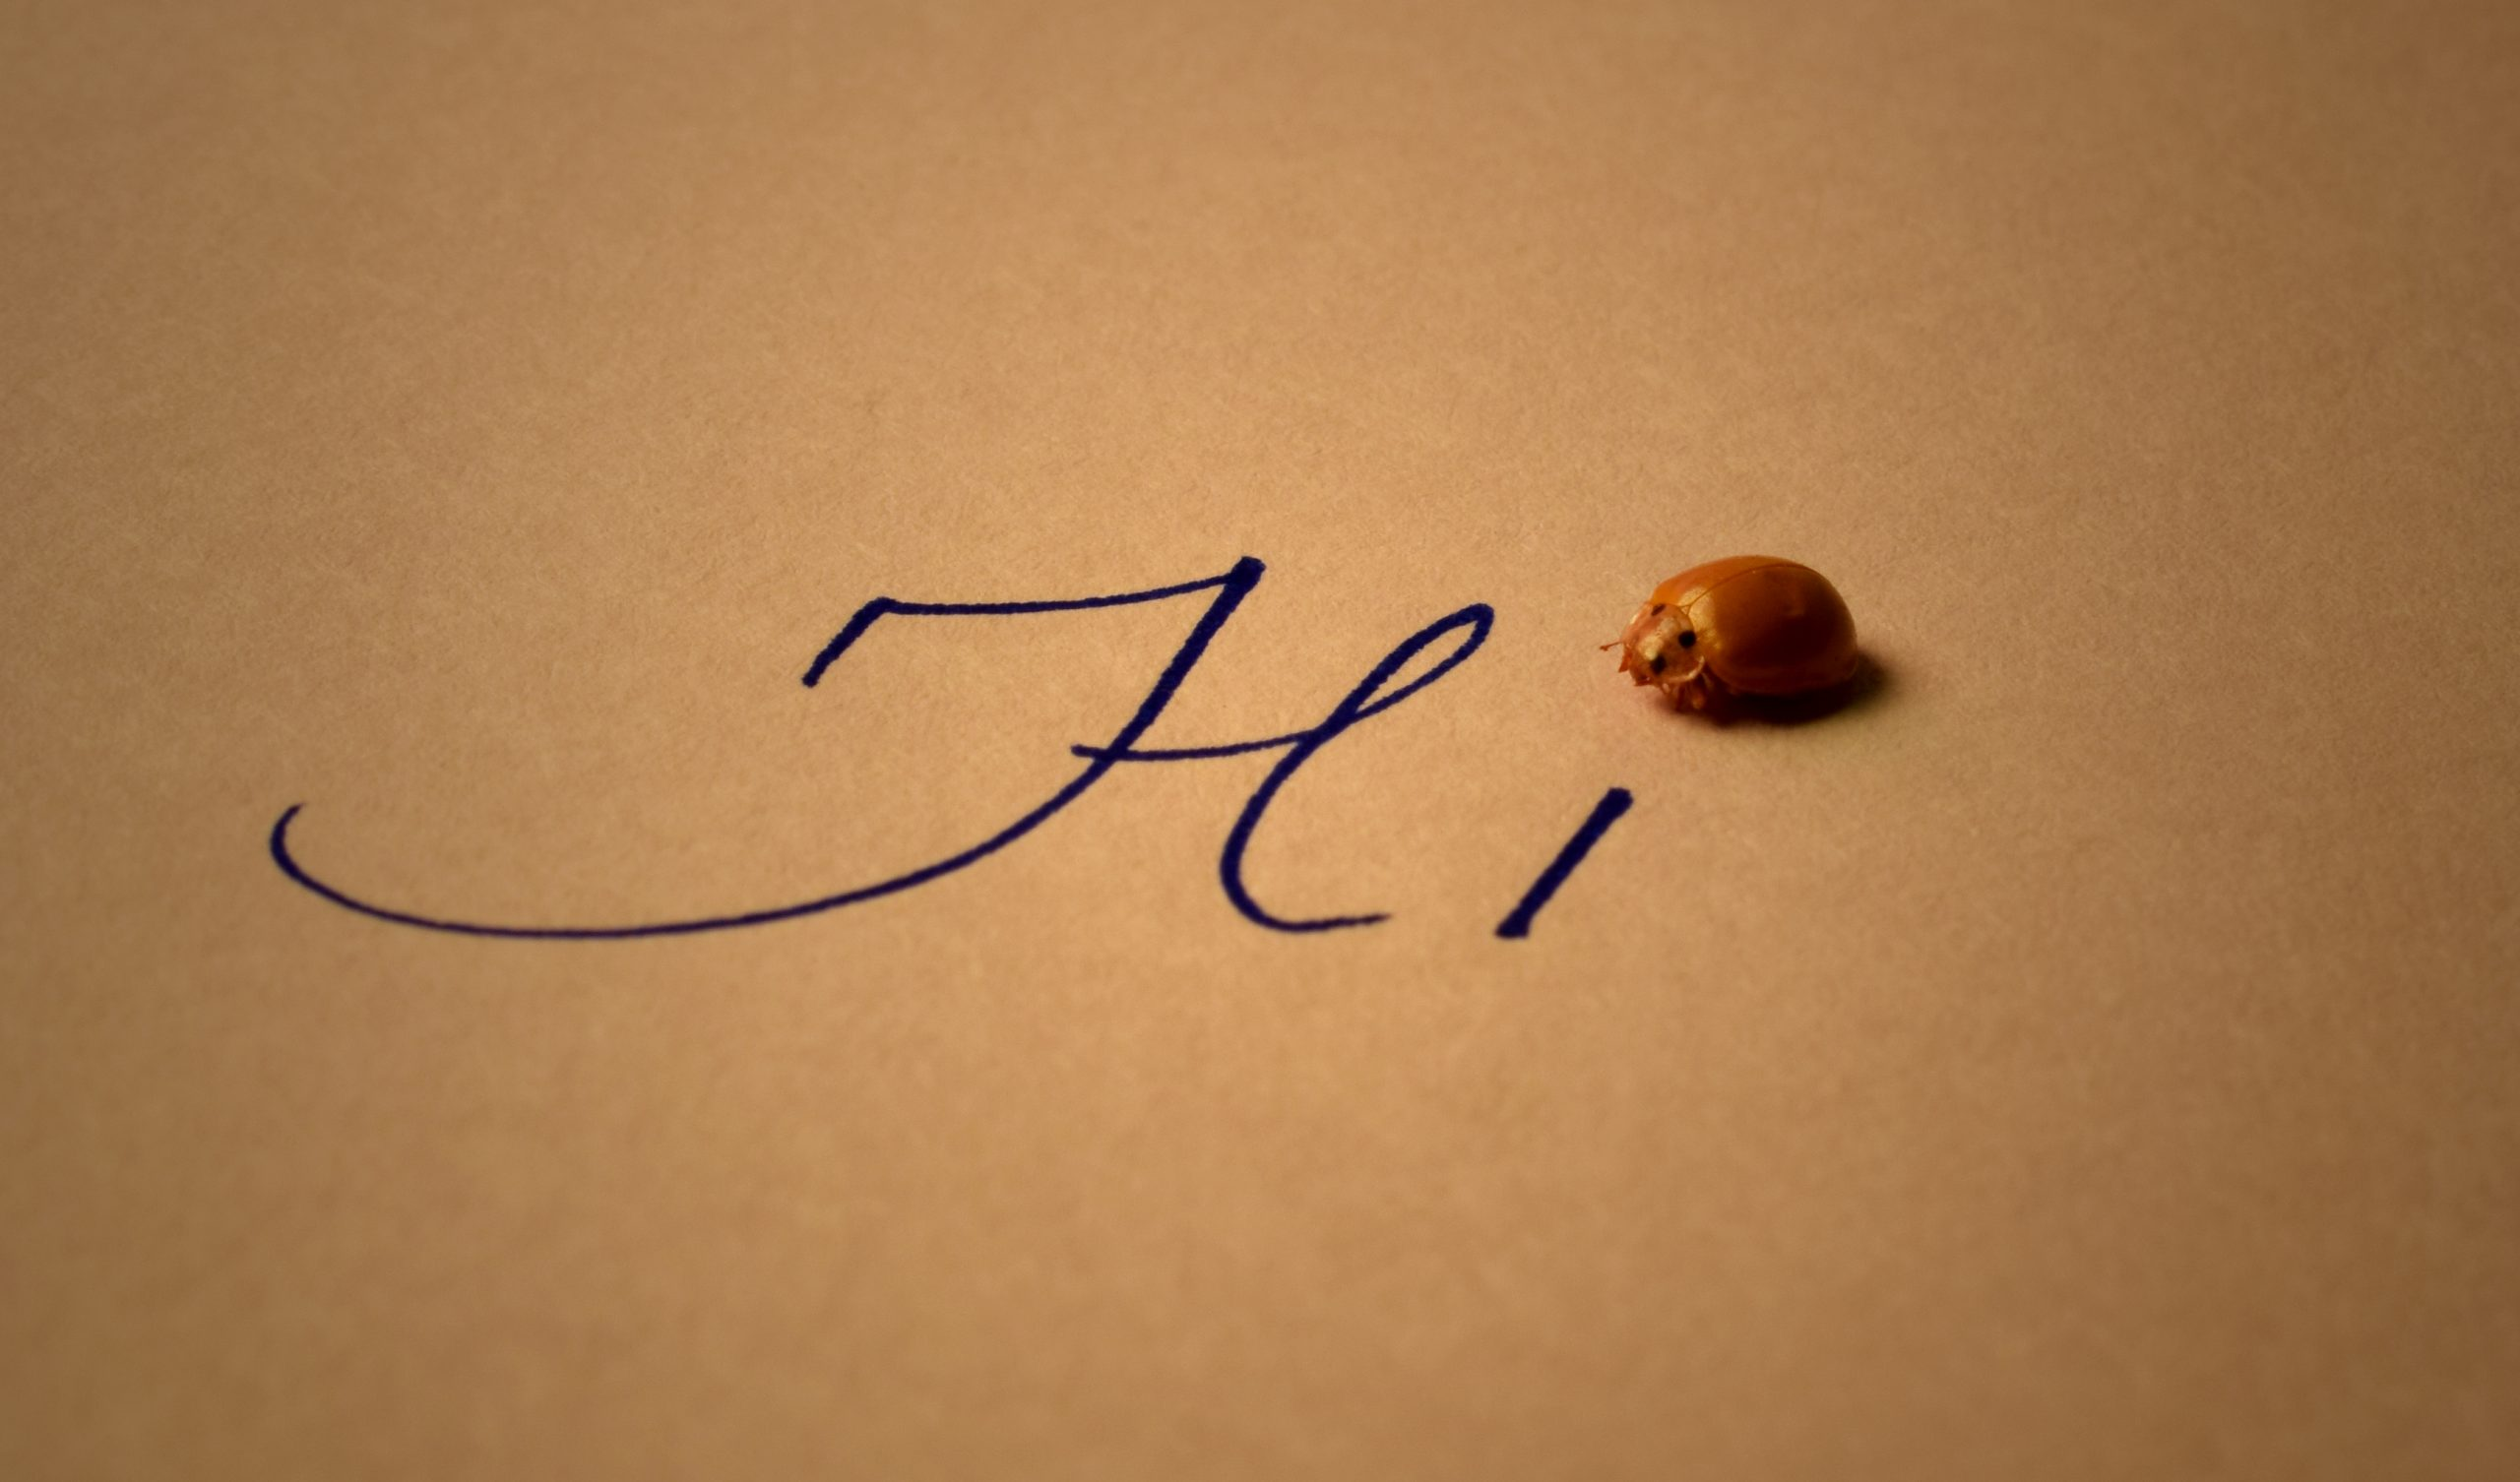 An insect and Hi word